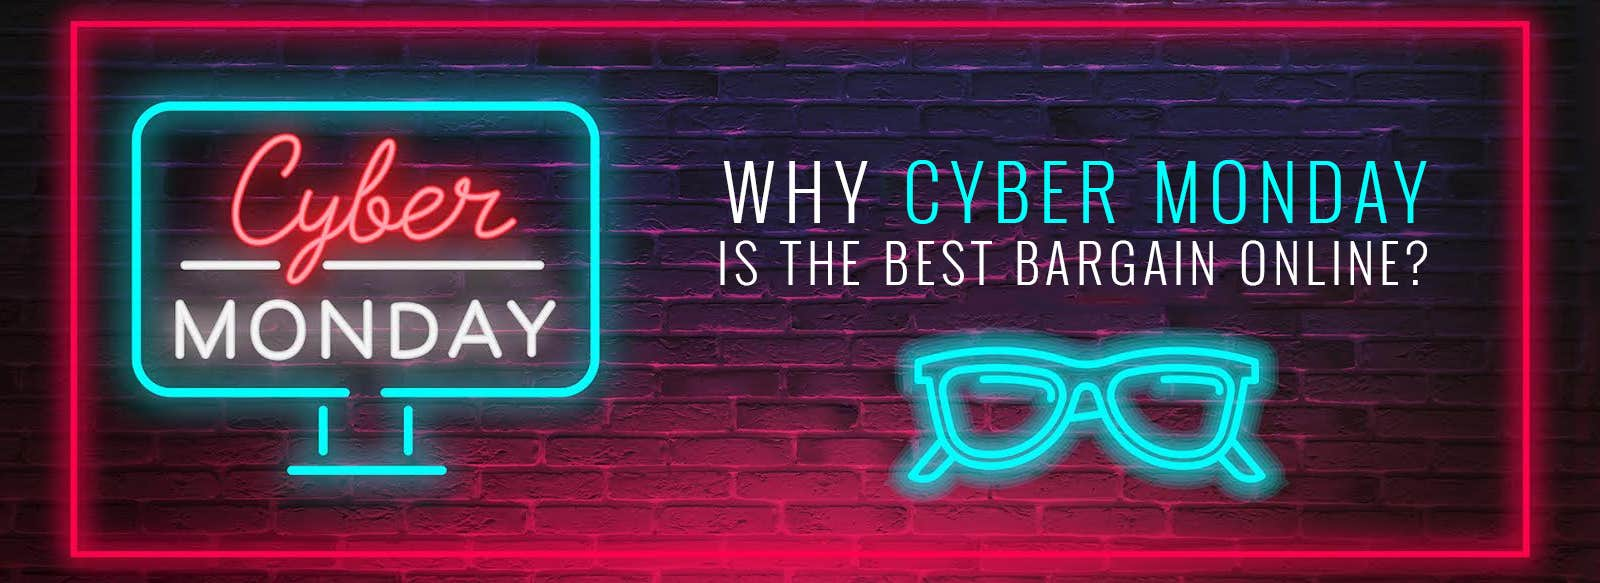 Why Cyber Monday Is The Best Bargain Online?